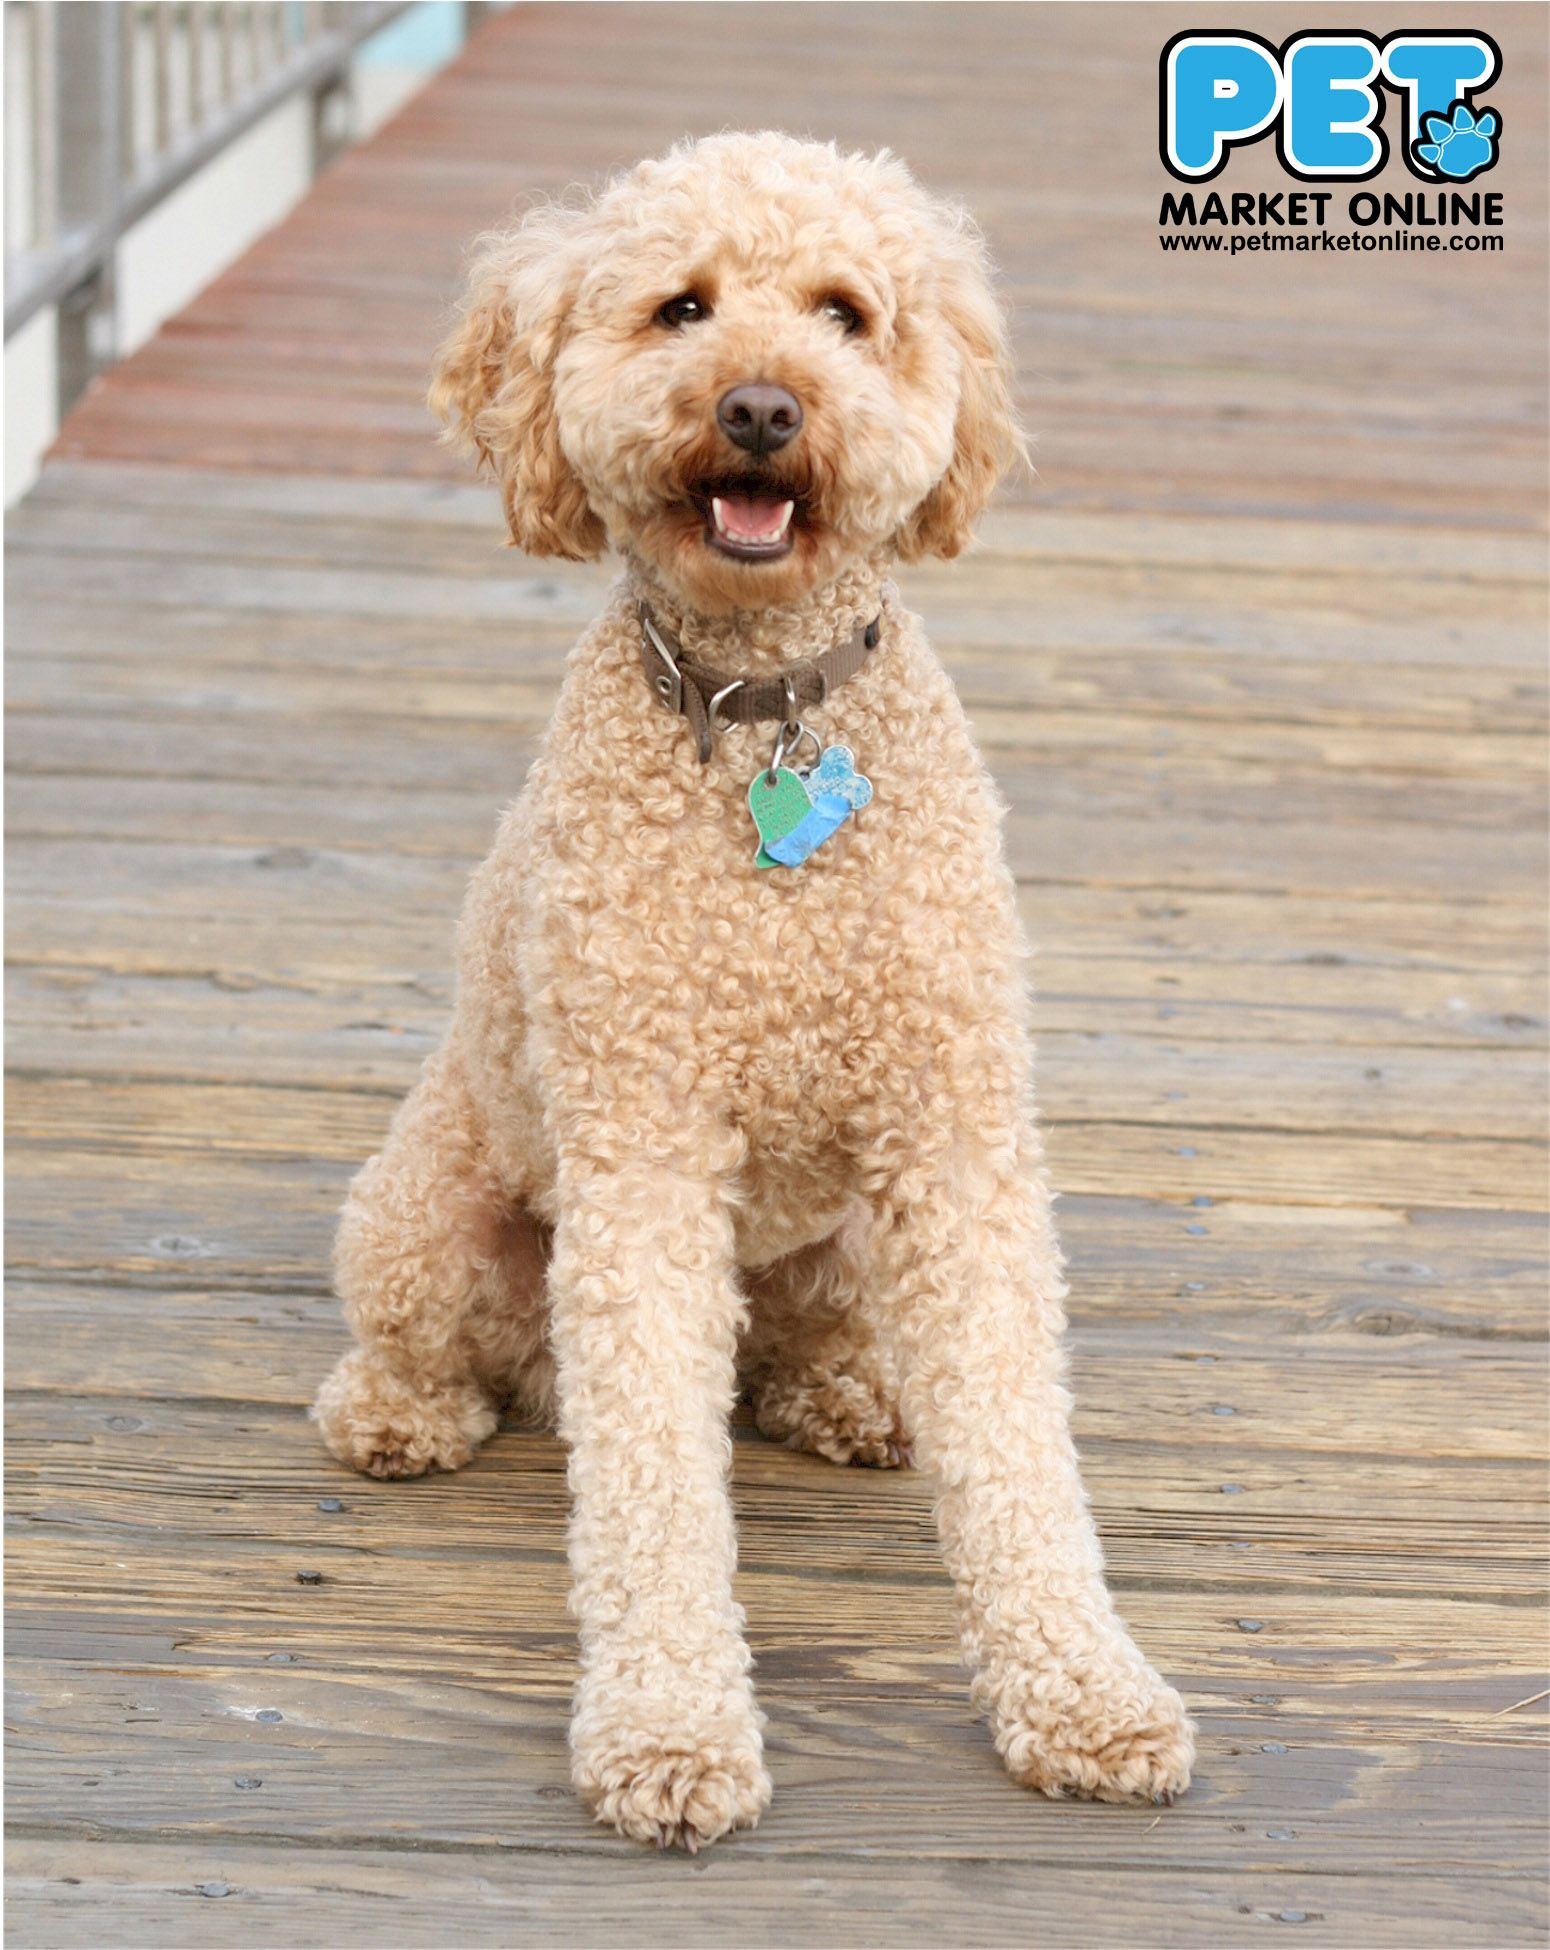 Sunday S Dog Show Winner Is Labradoodle Www Petmarketonline Com A Labradoodle Is A Crossbred Dog Created By Cross Labradoodle Dogs Labradoodle Poodle Puppy